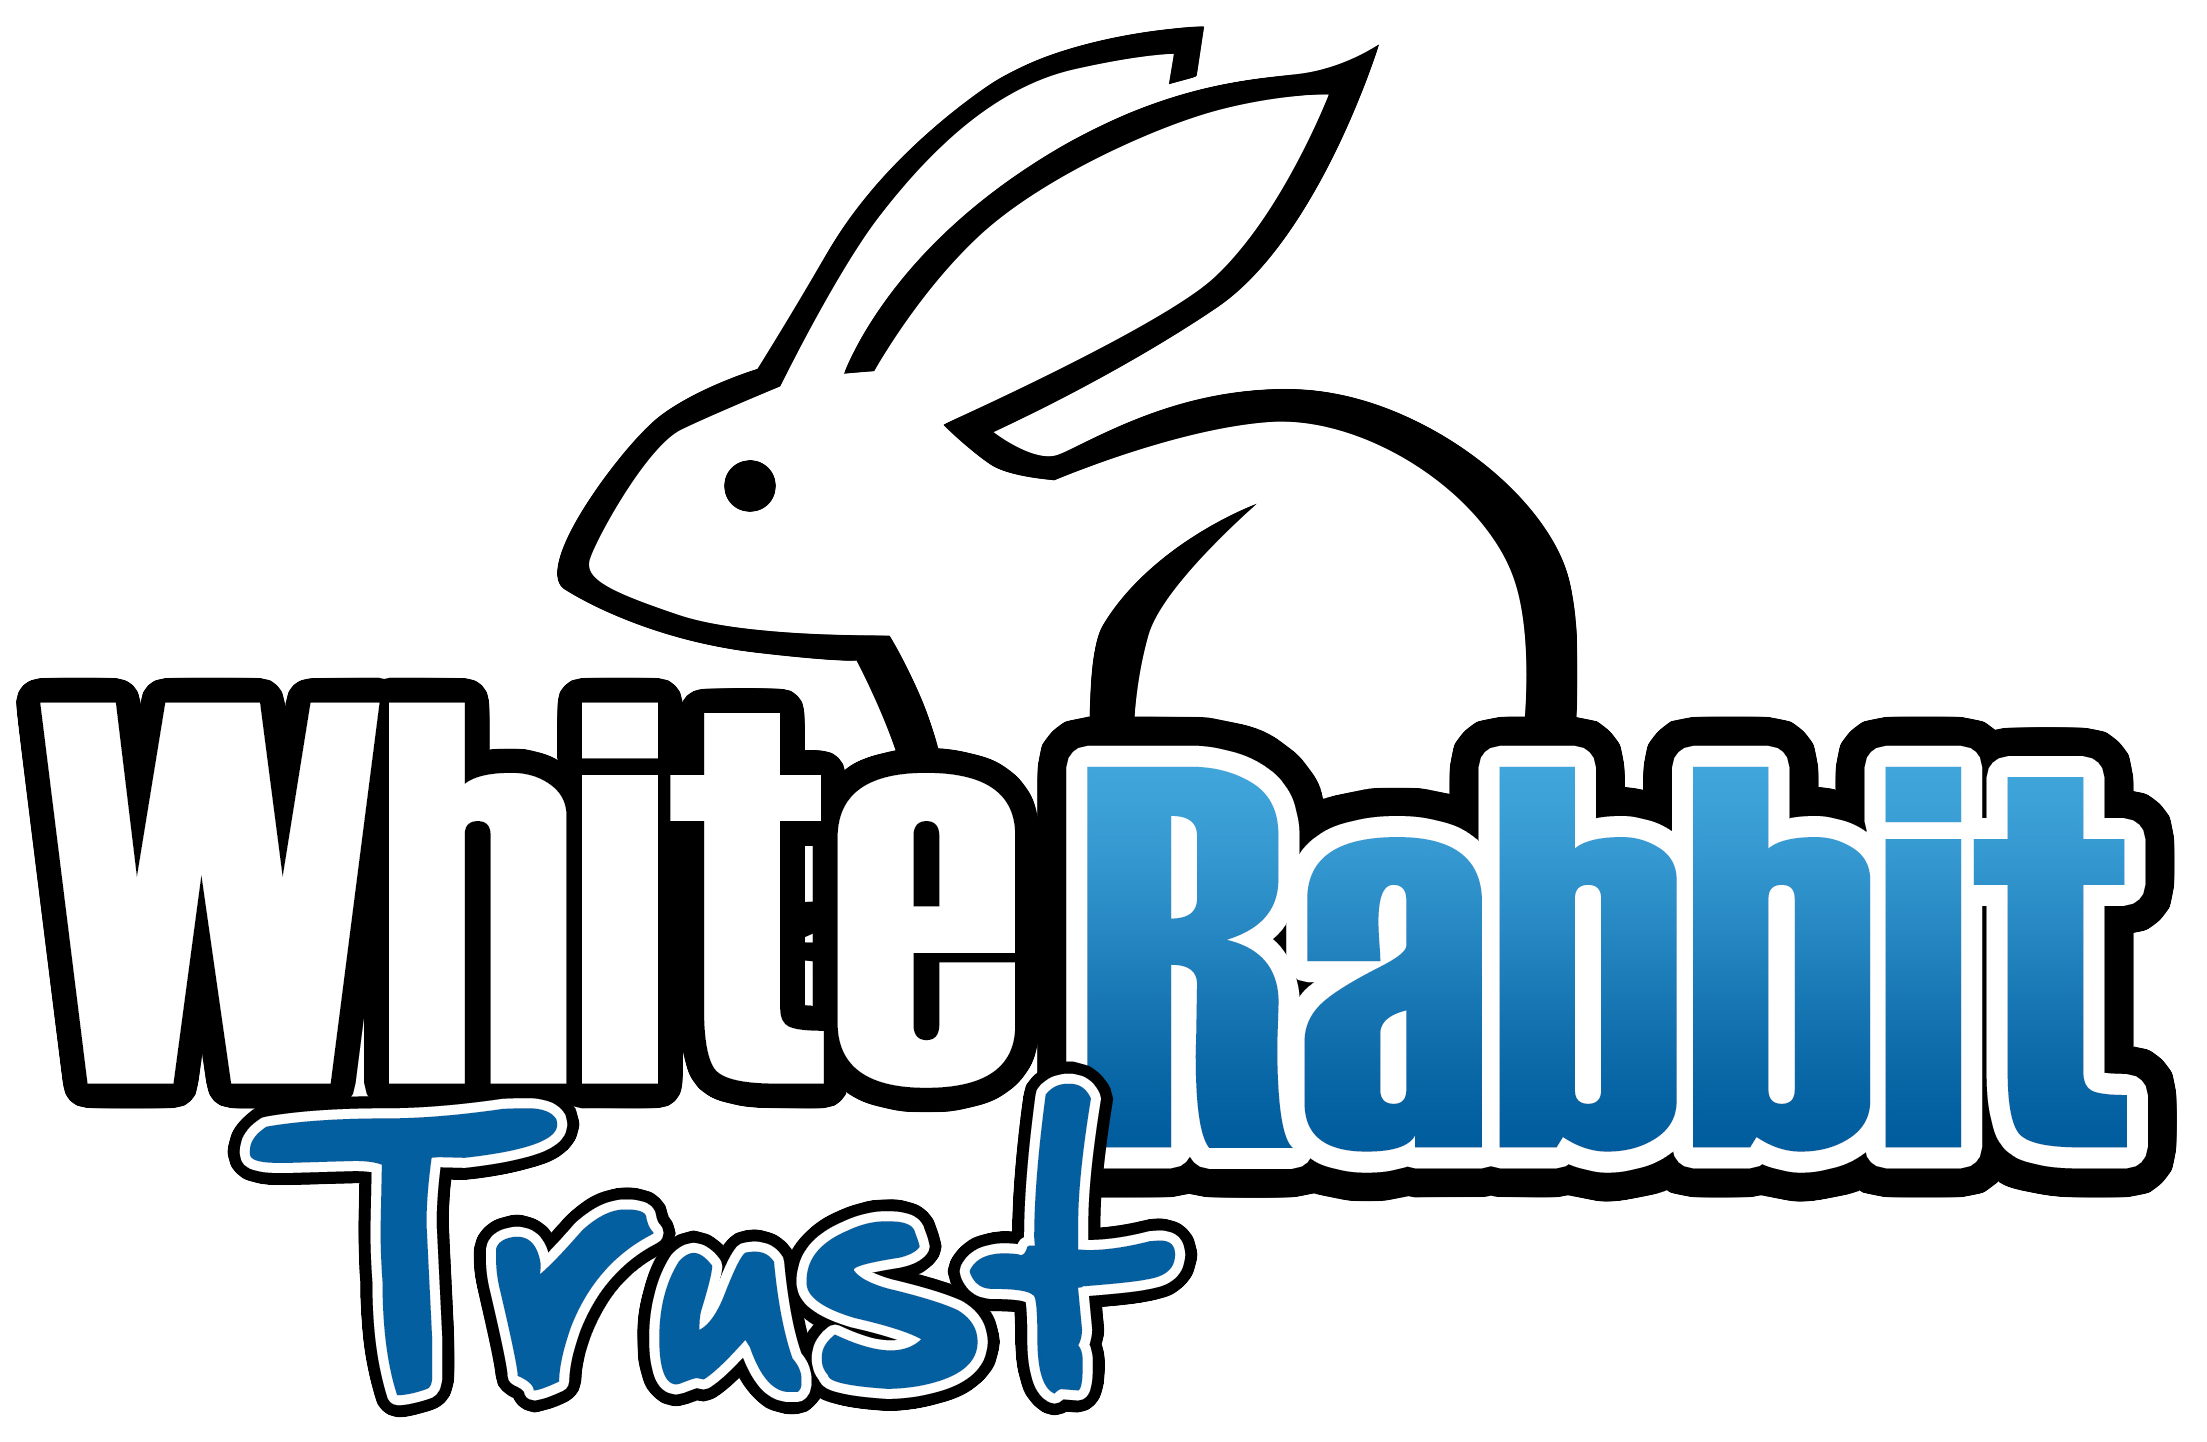 White Rabbit Trust